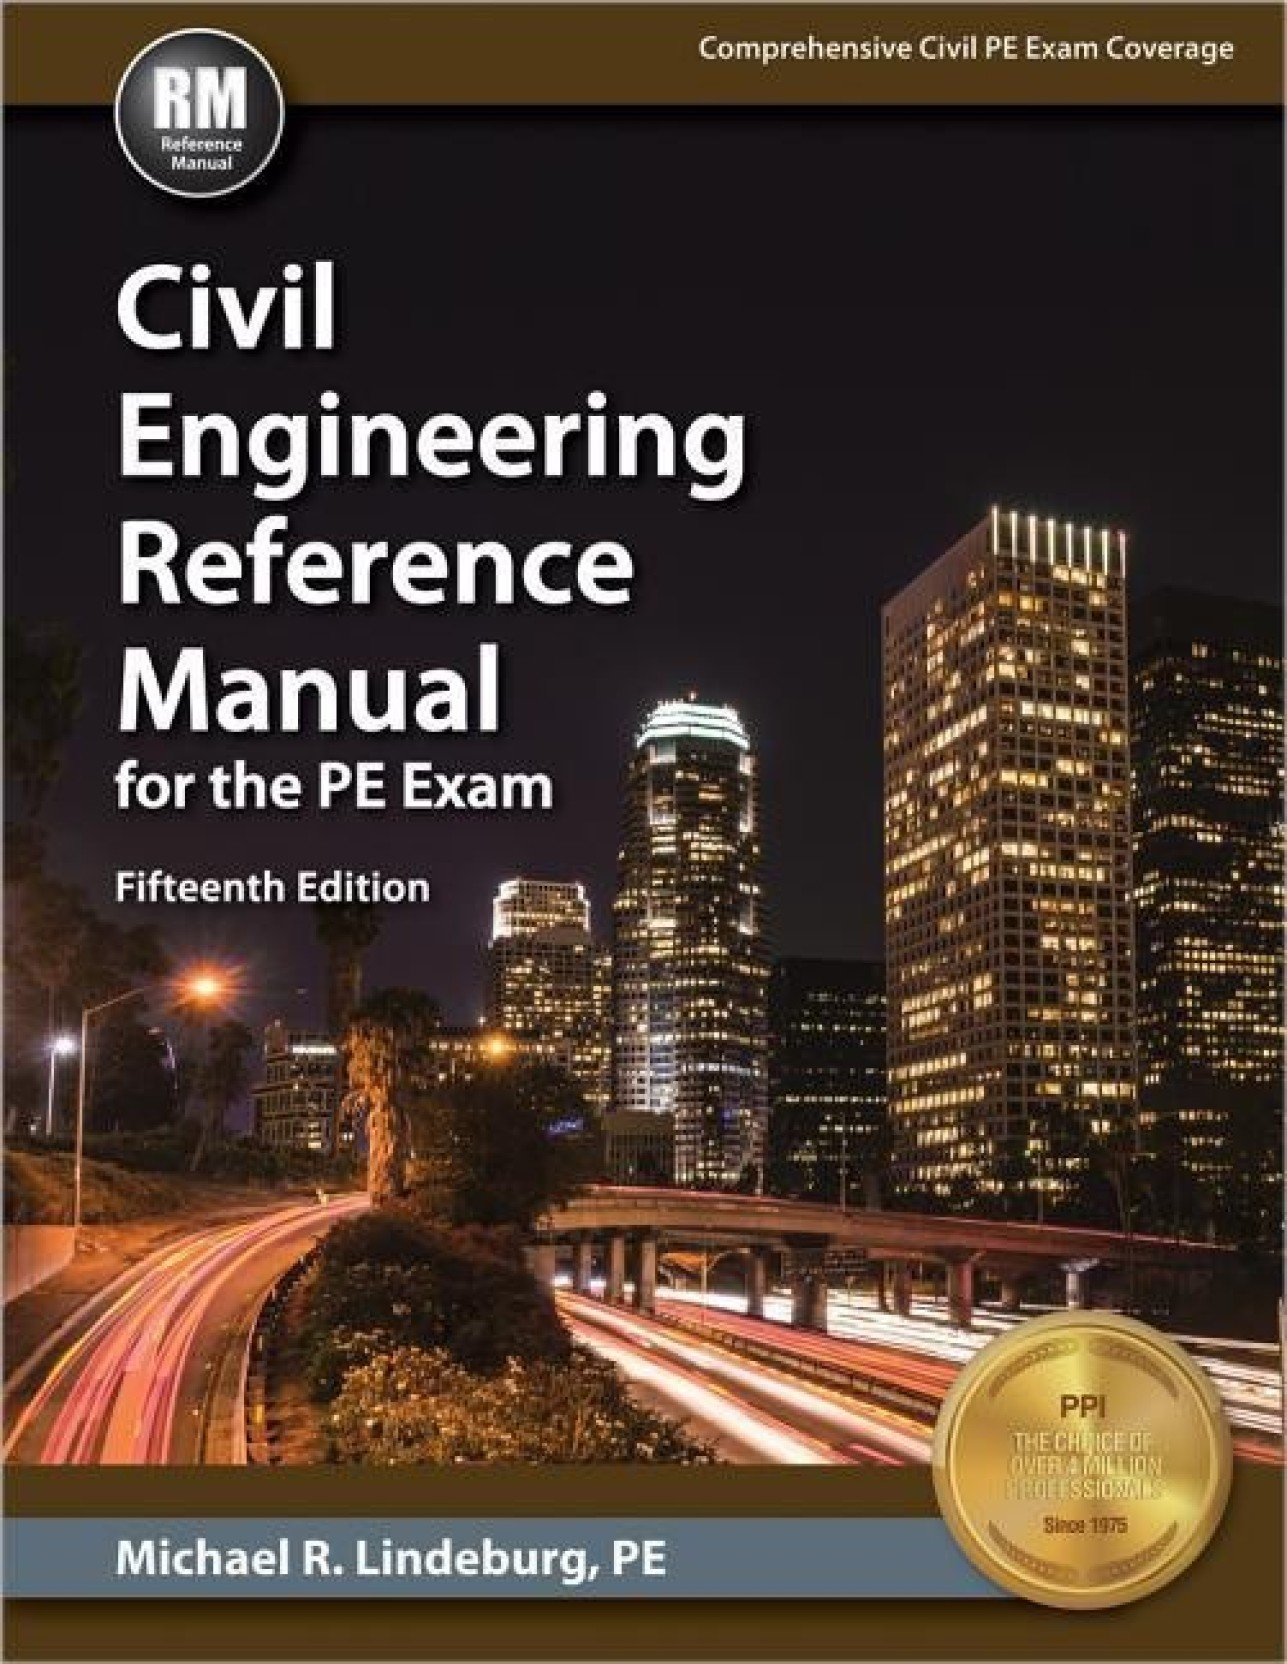 Civil Engineering Reference Manual for the PE Exam. ADD TO CART